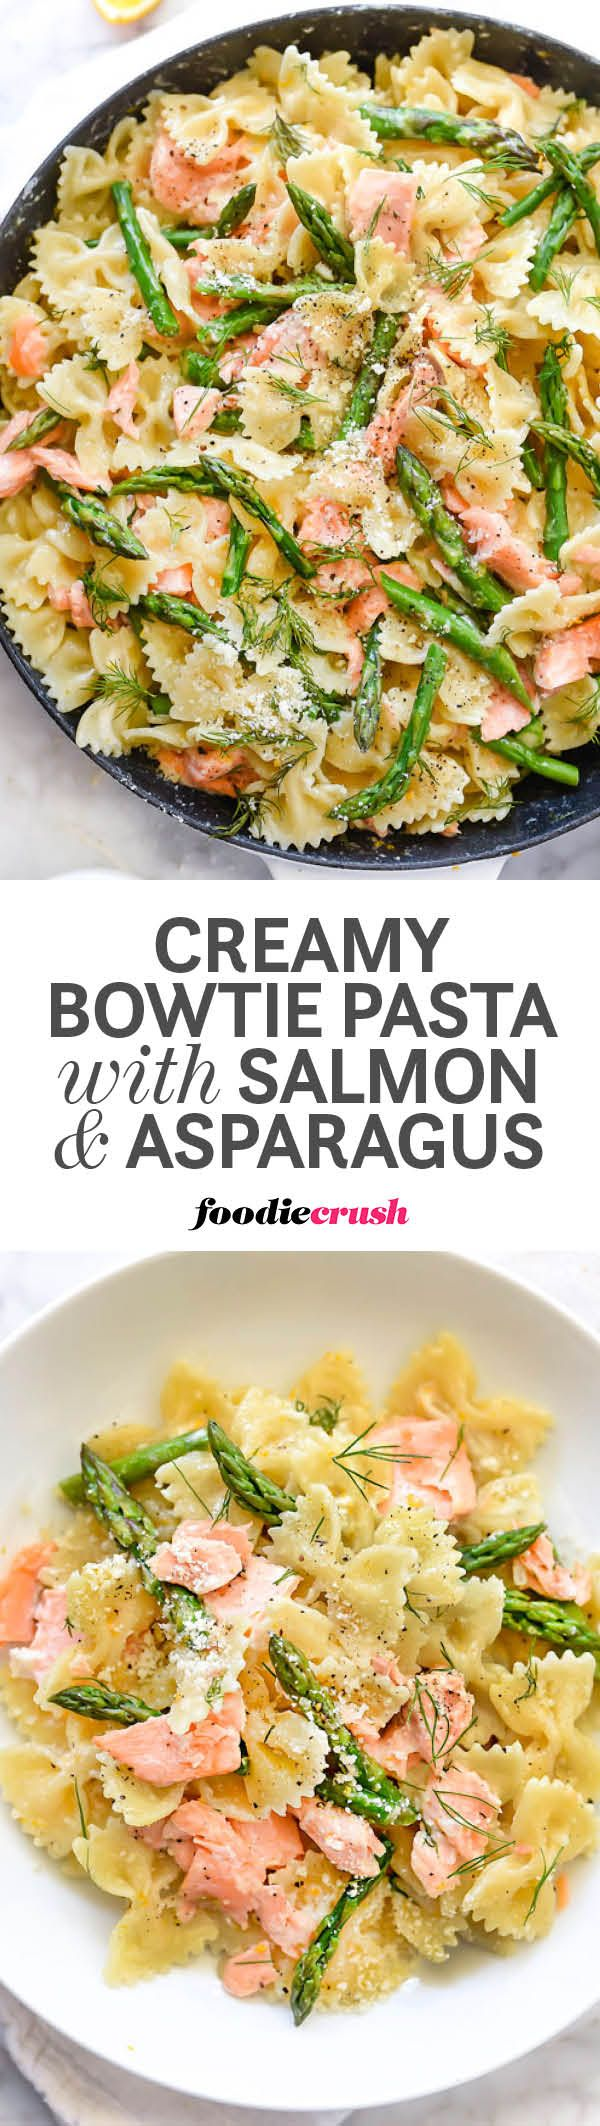 Leftover salmon gets a recipe upgrade with bowtie pasta, fresh asparagus, and dill in this super simple Parmesan cream sauce that makes meal prep a breeze | http://foodiecrush.com #pasta #salmon